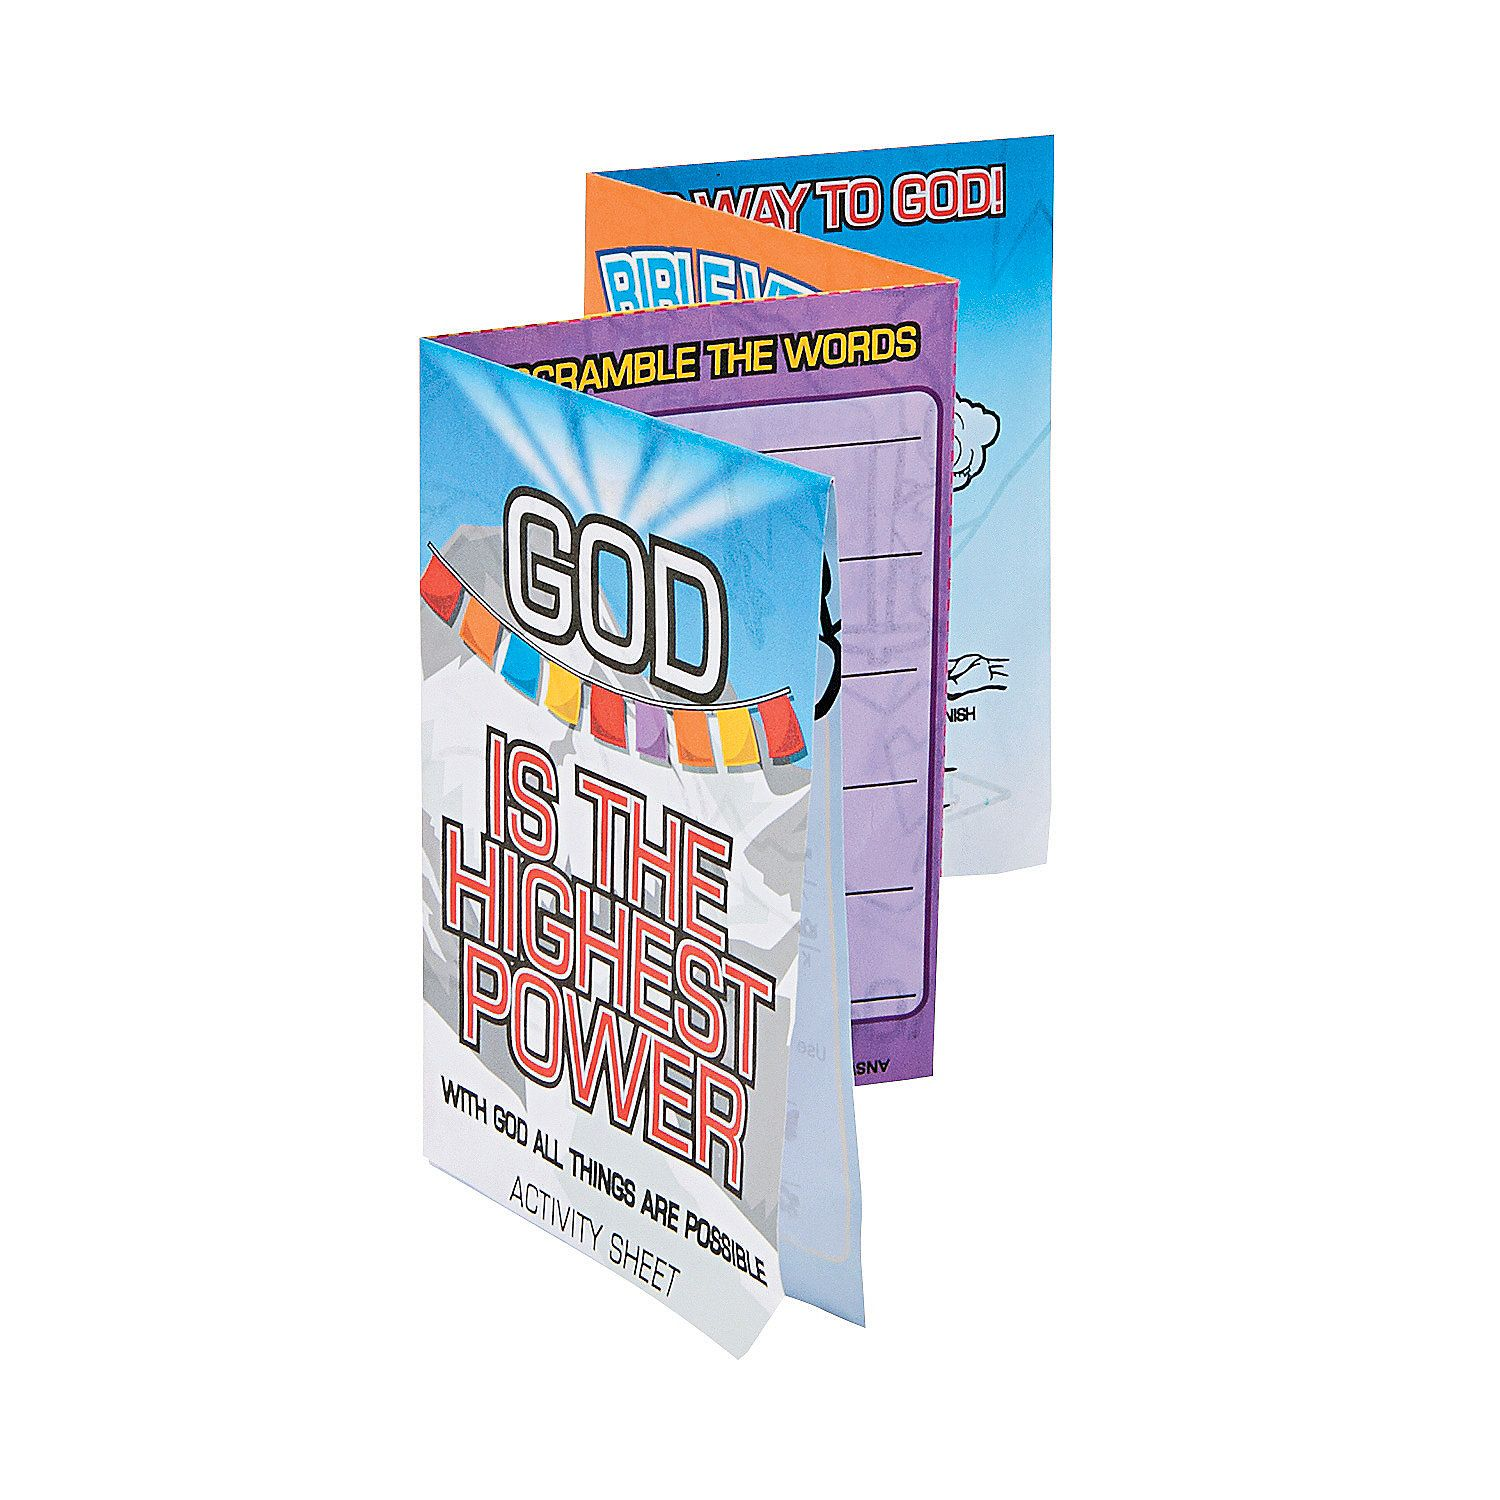 The Highest Power Vbs Theme Vacation Bible School